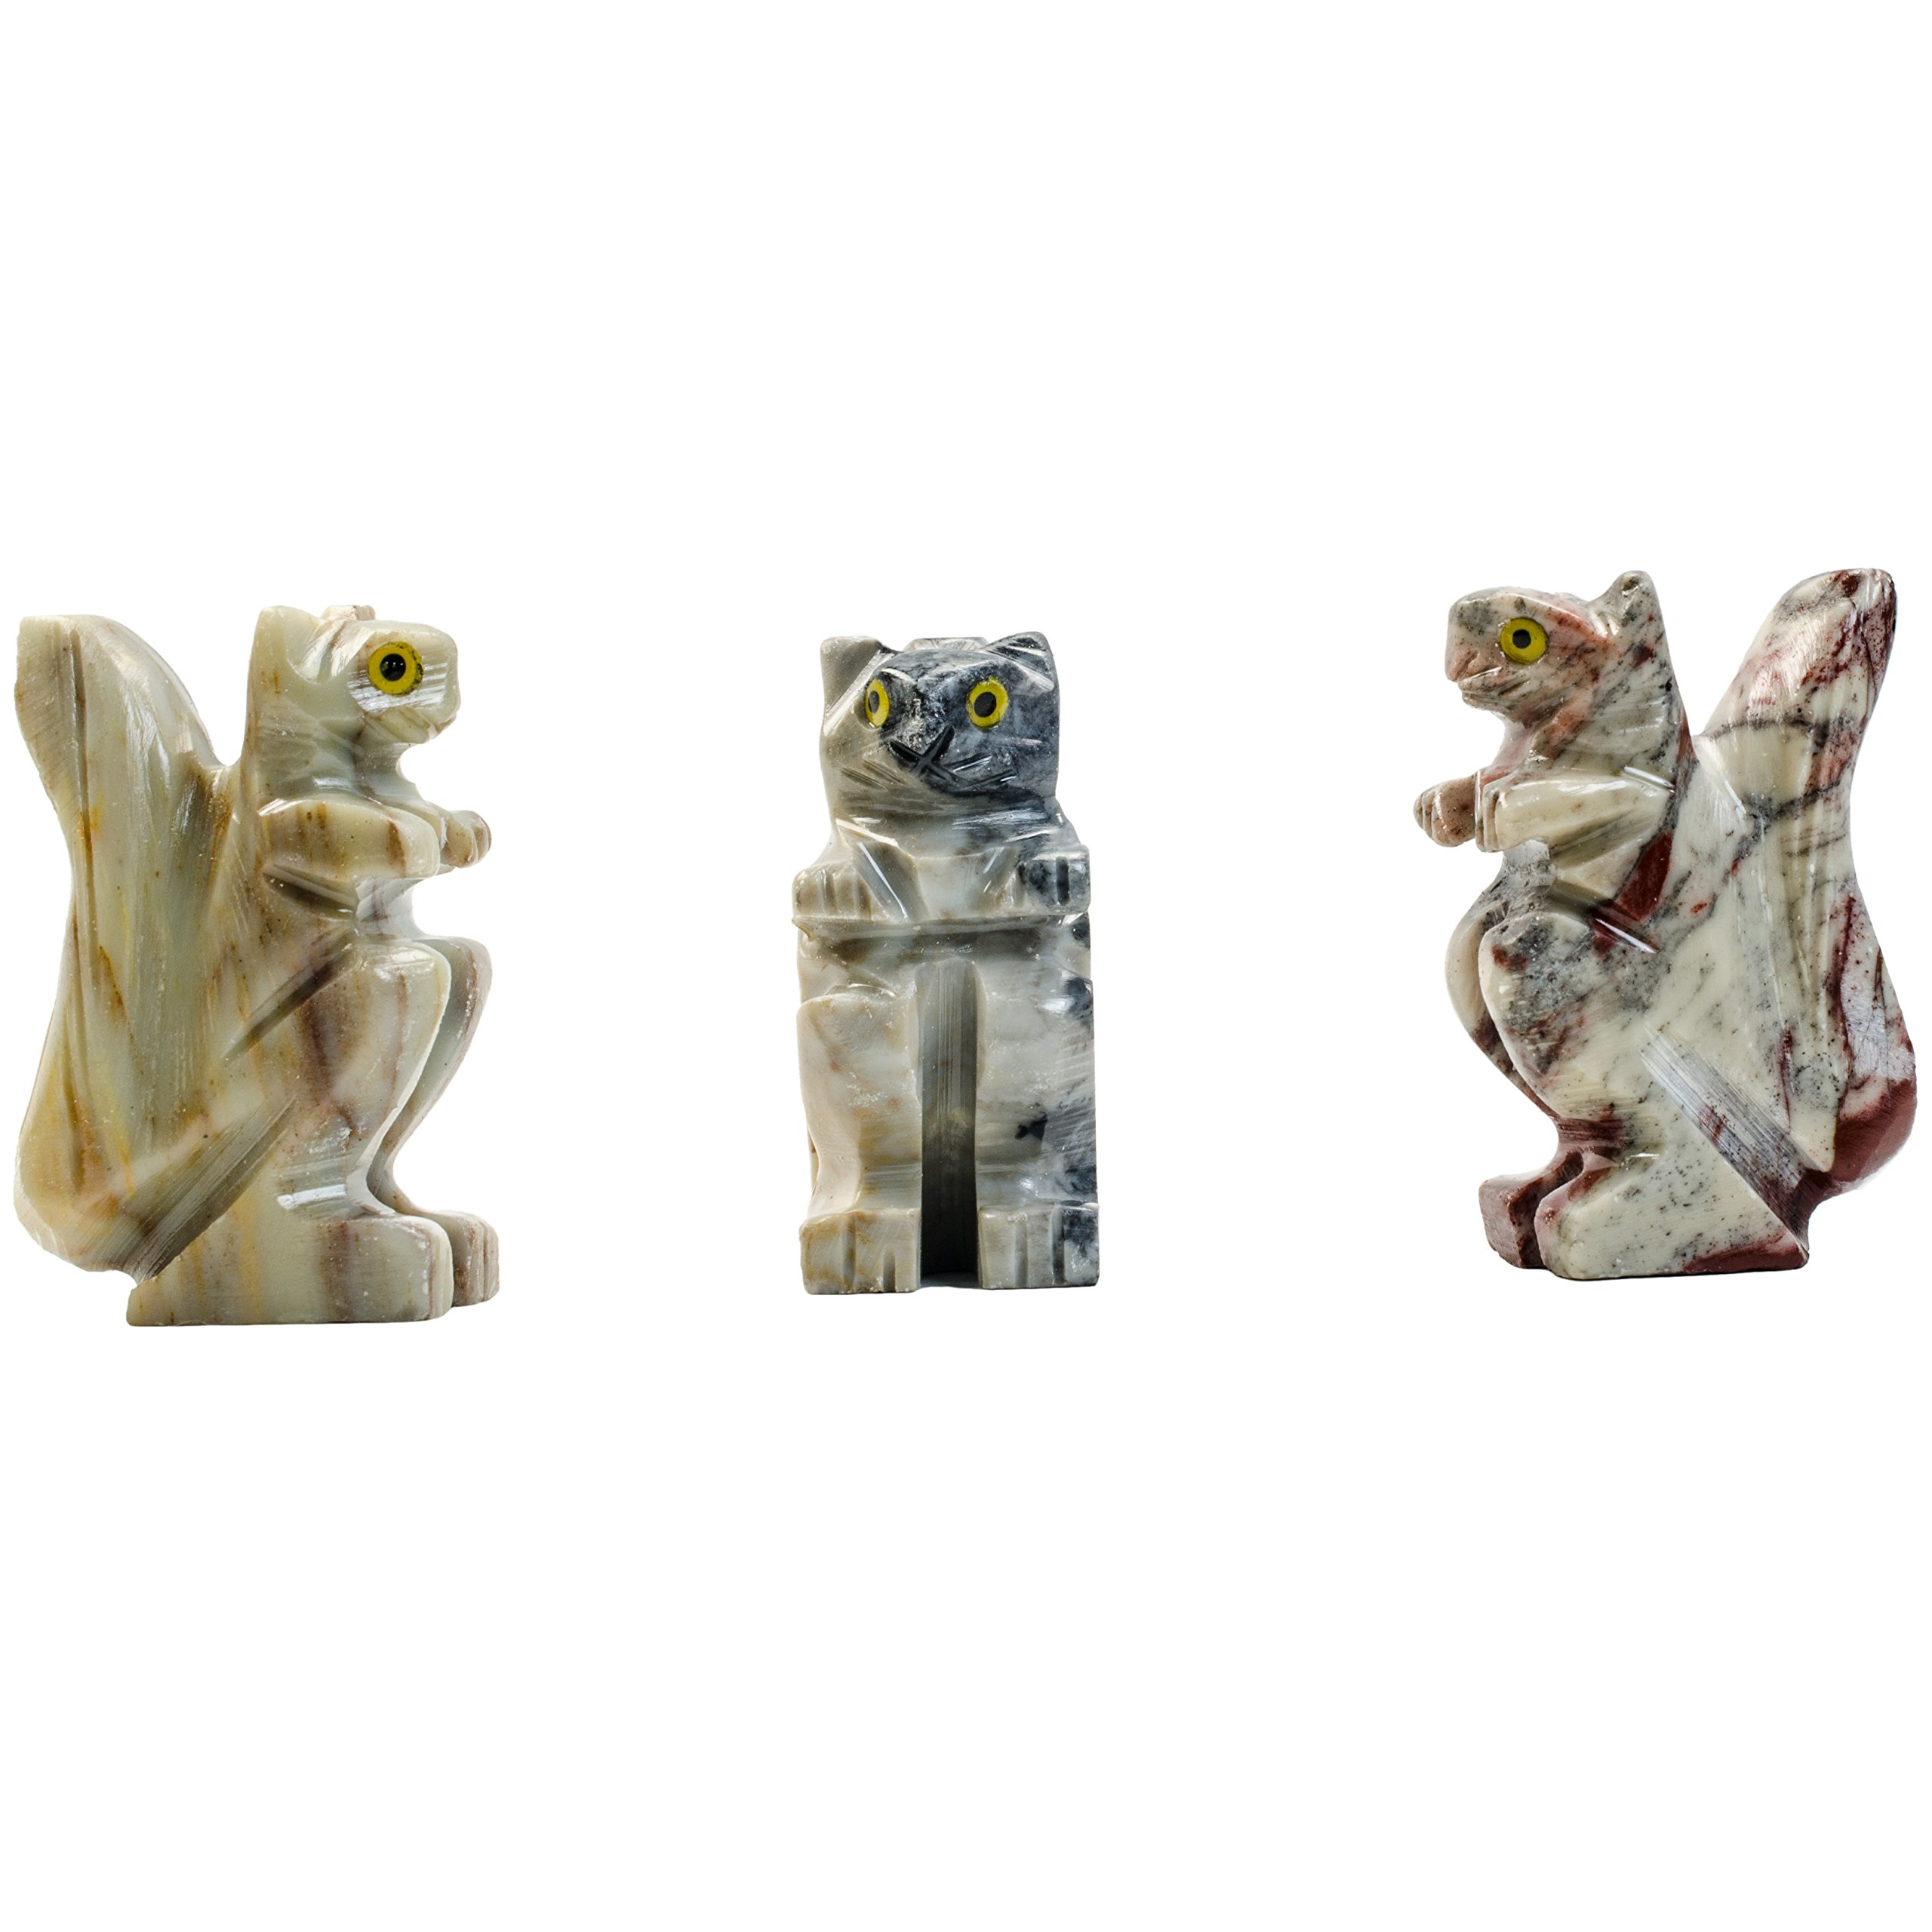 Fantasia Creations: 10 pcs Squirrel Soapstone Animal Figurine - Hand Carved by Fantasia's Master Artisans for Party Favors, Collecting, Wire Wrapping, Gifts and More!